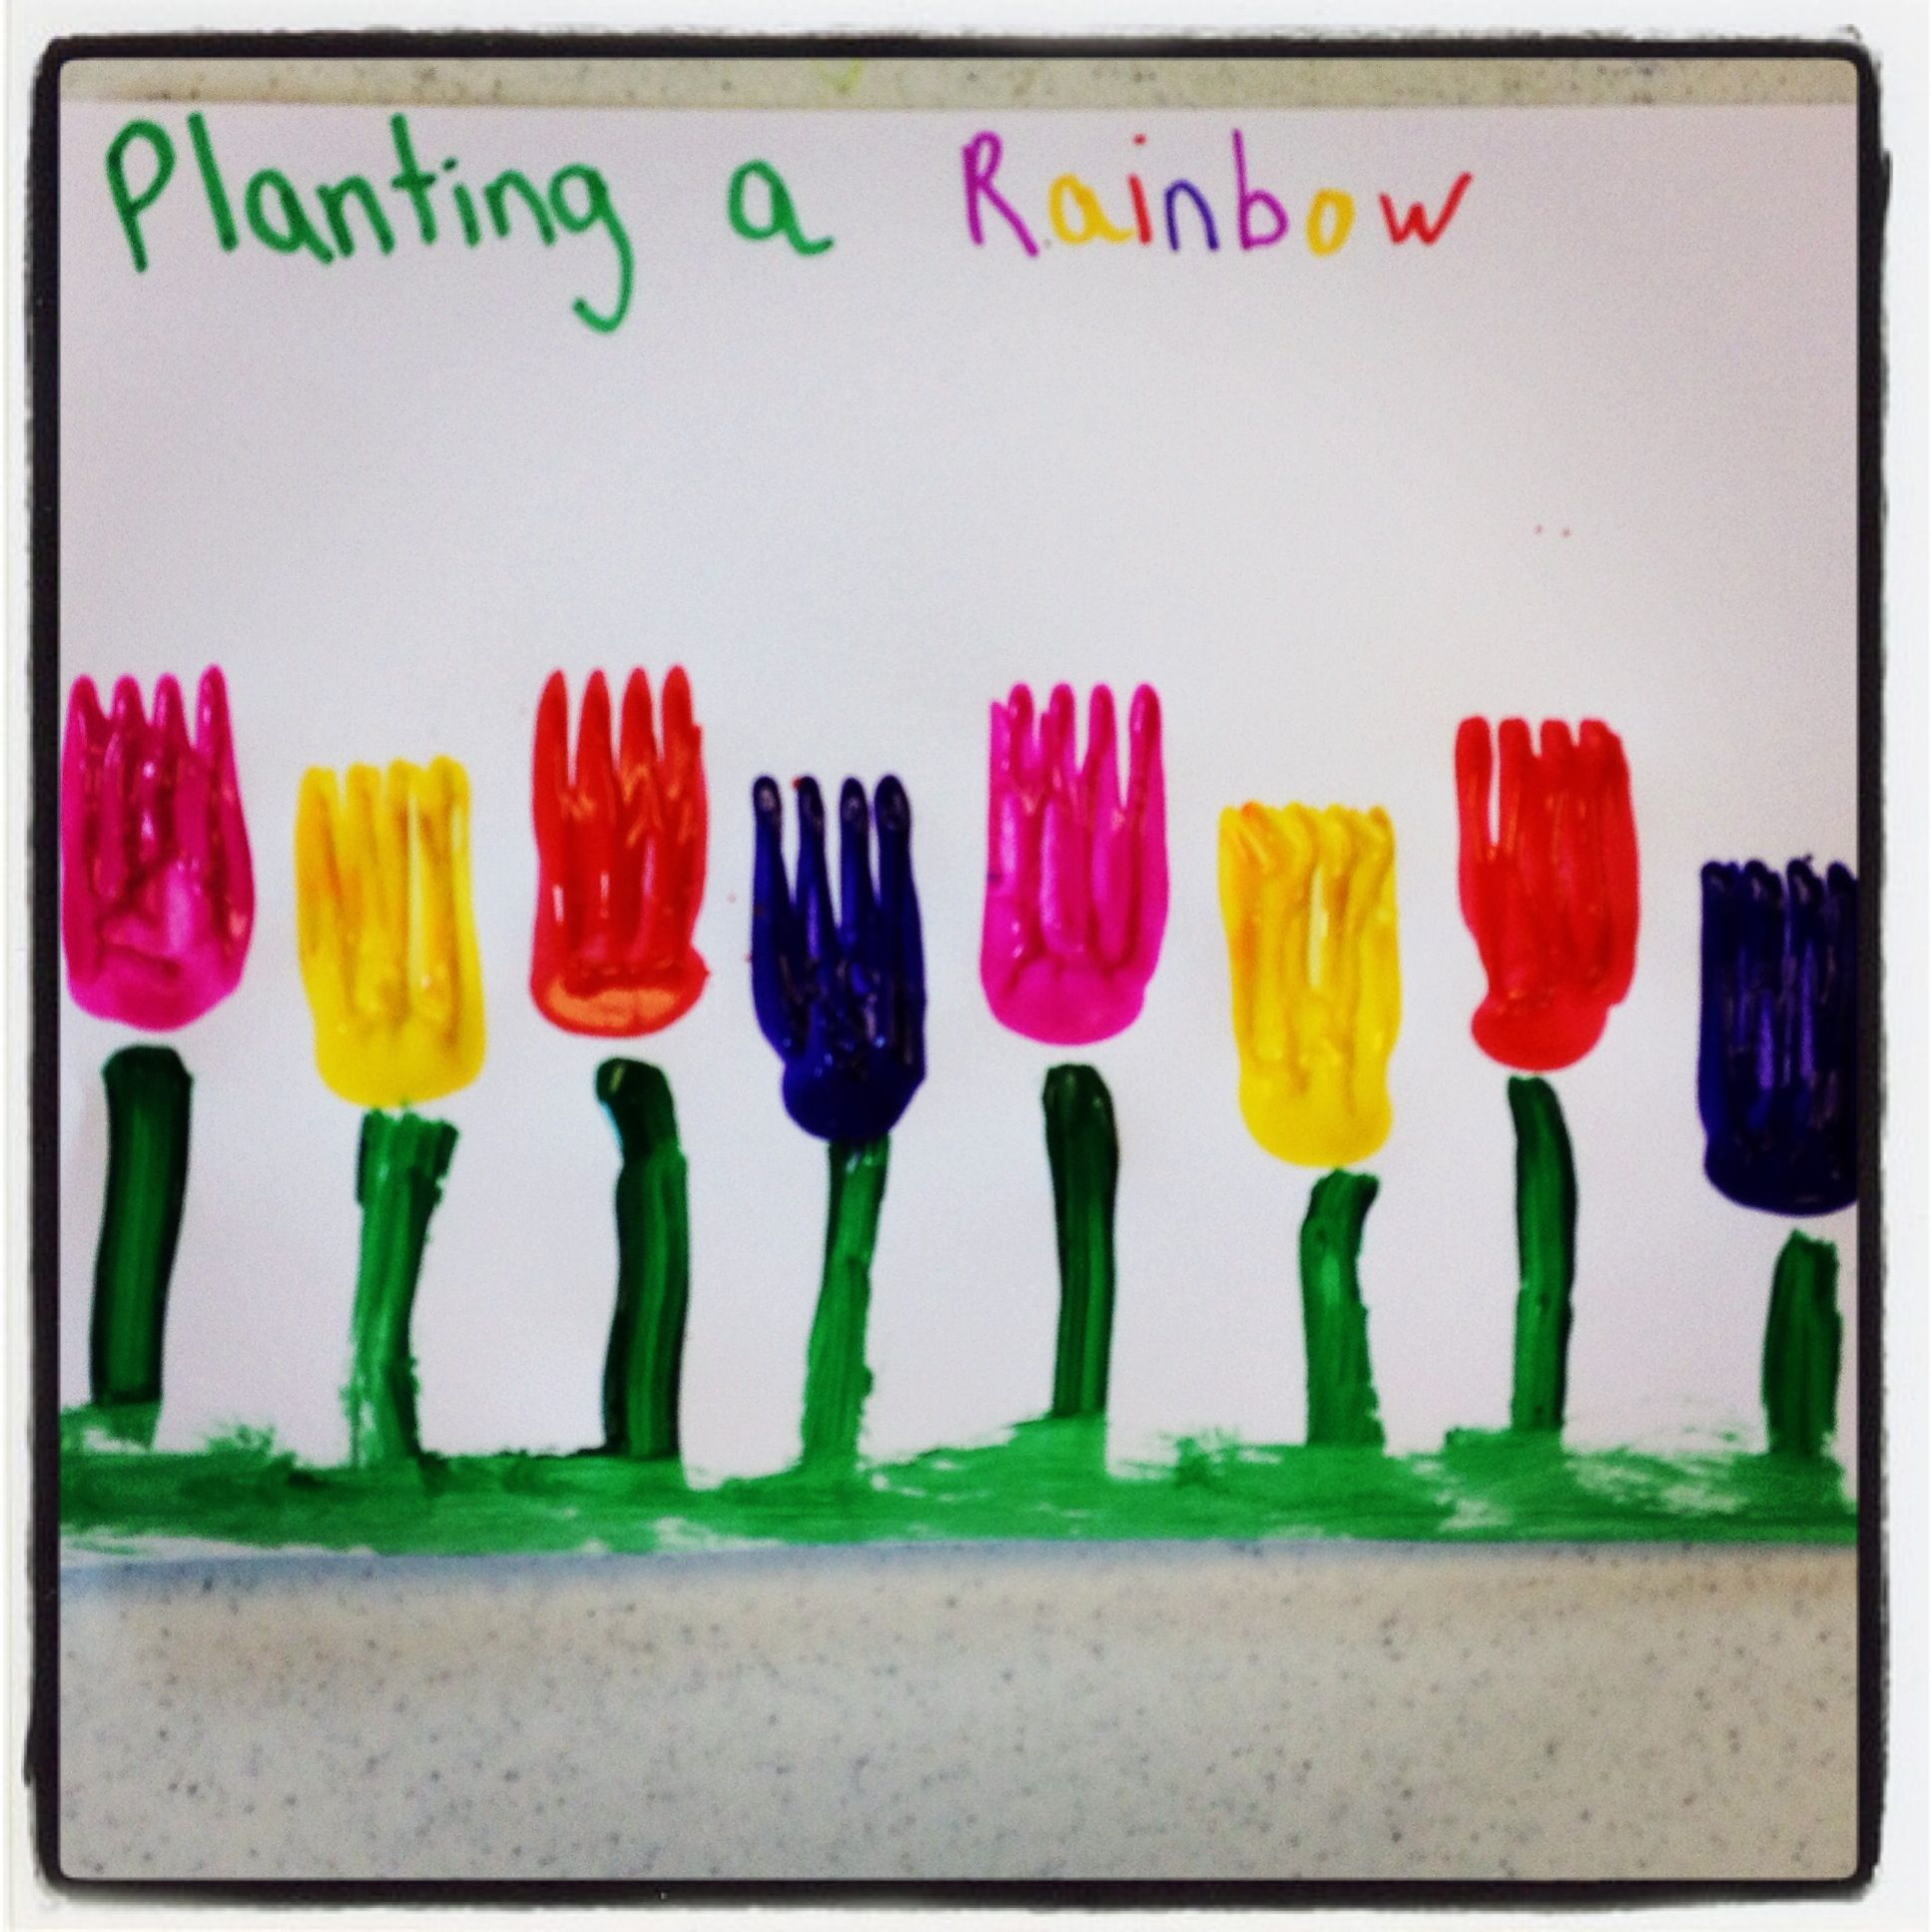 Planting A Rainbow With Forks With Images